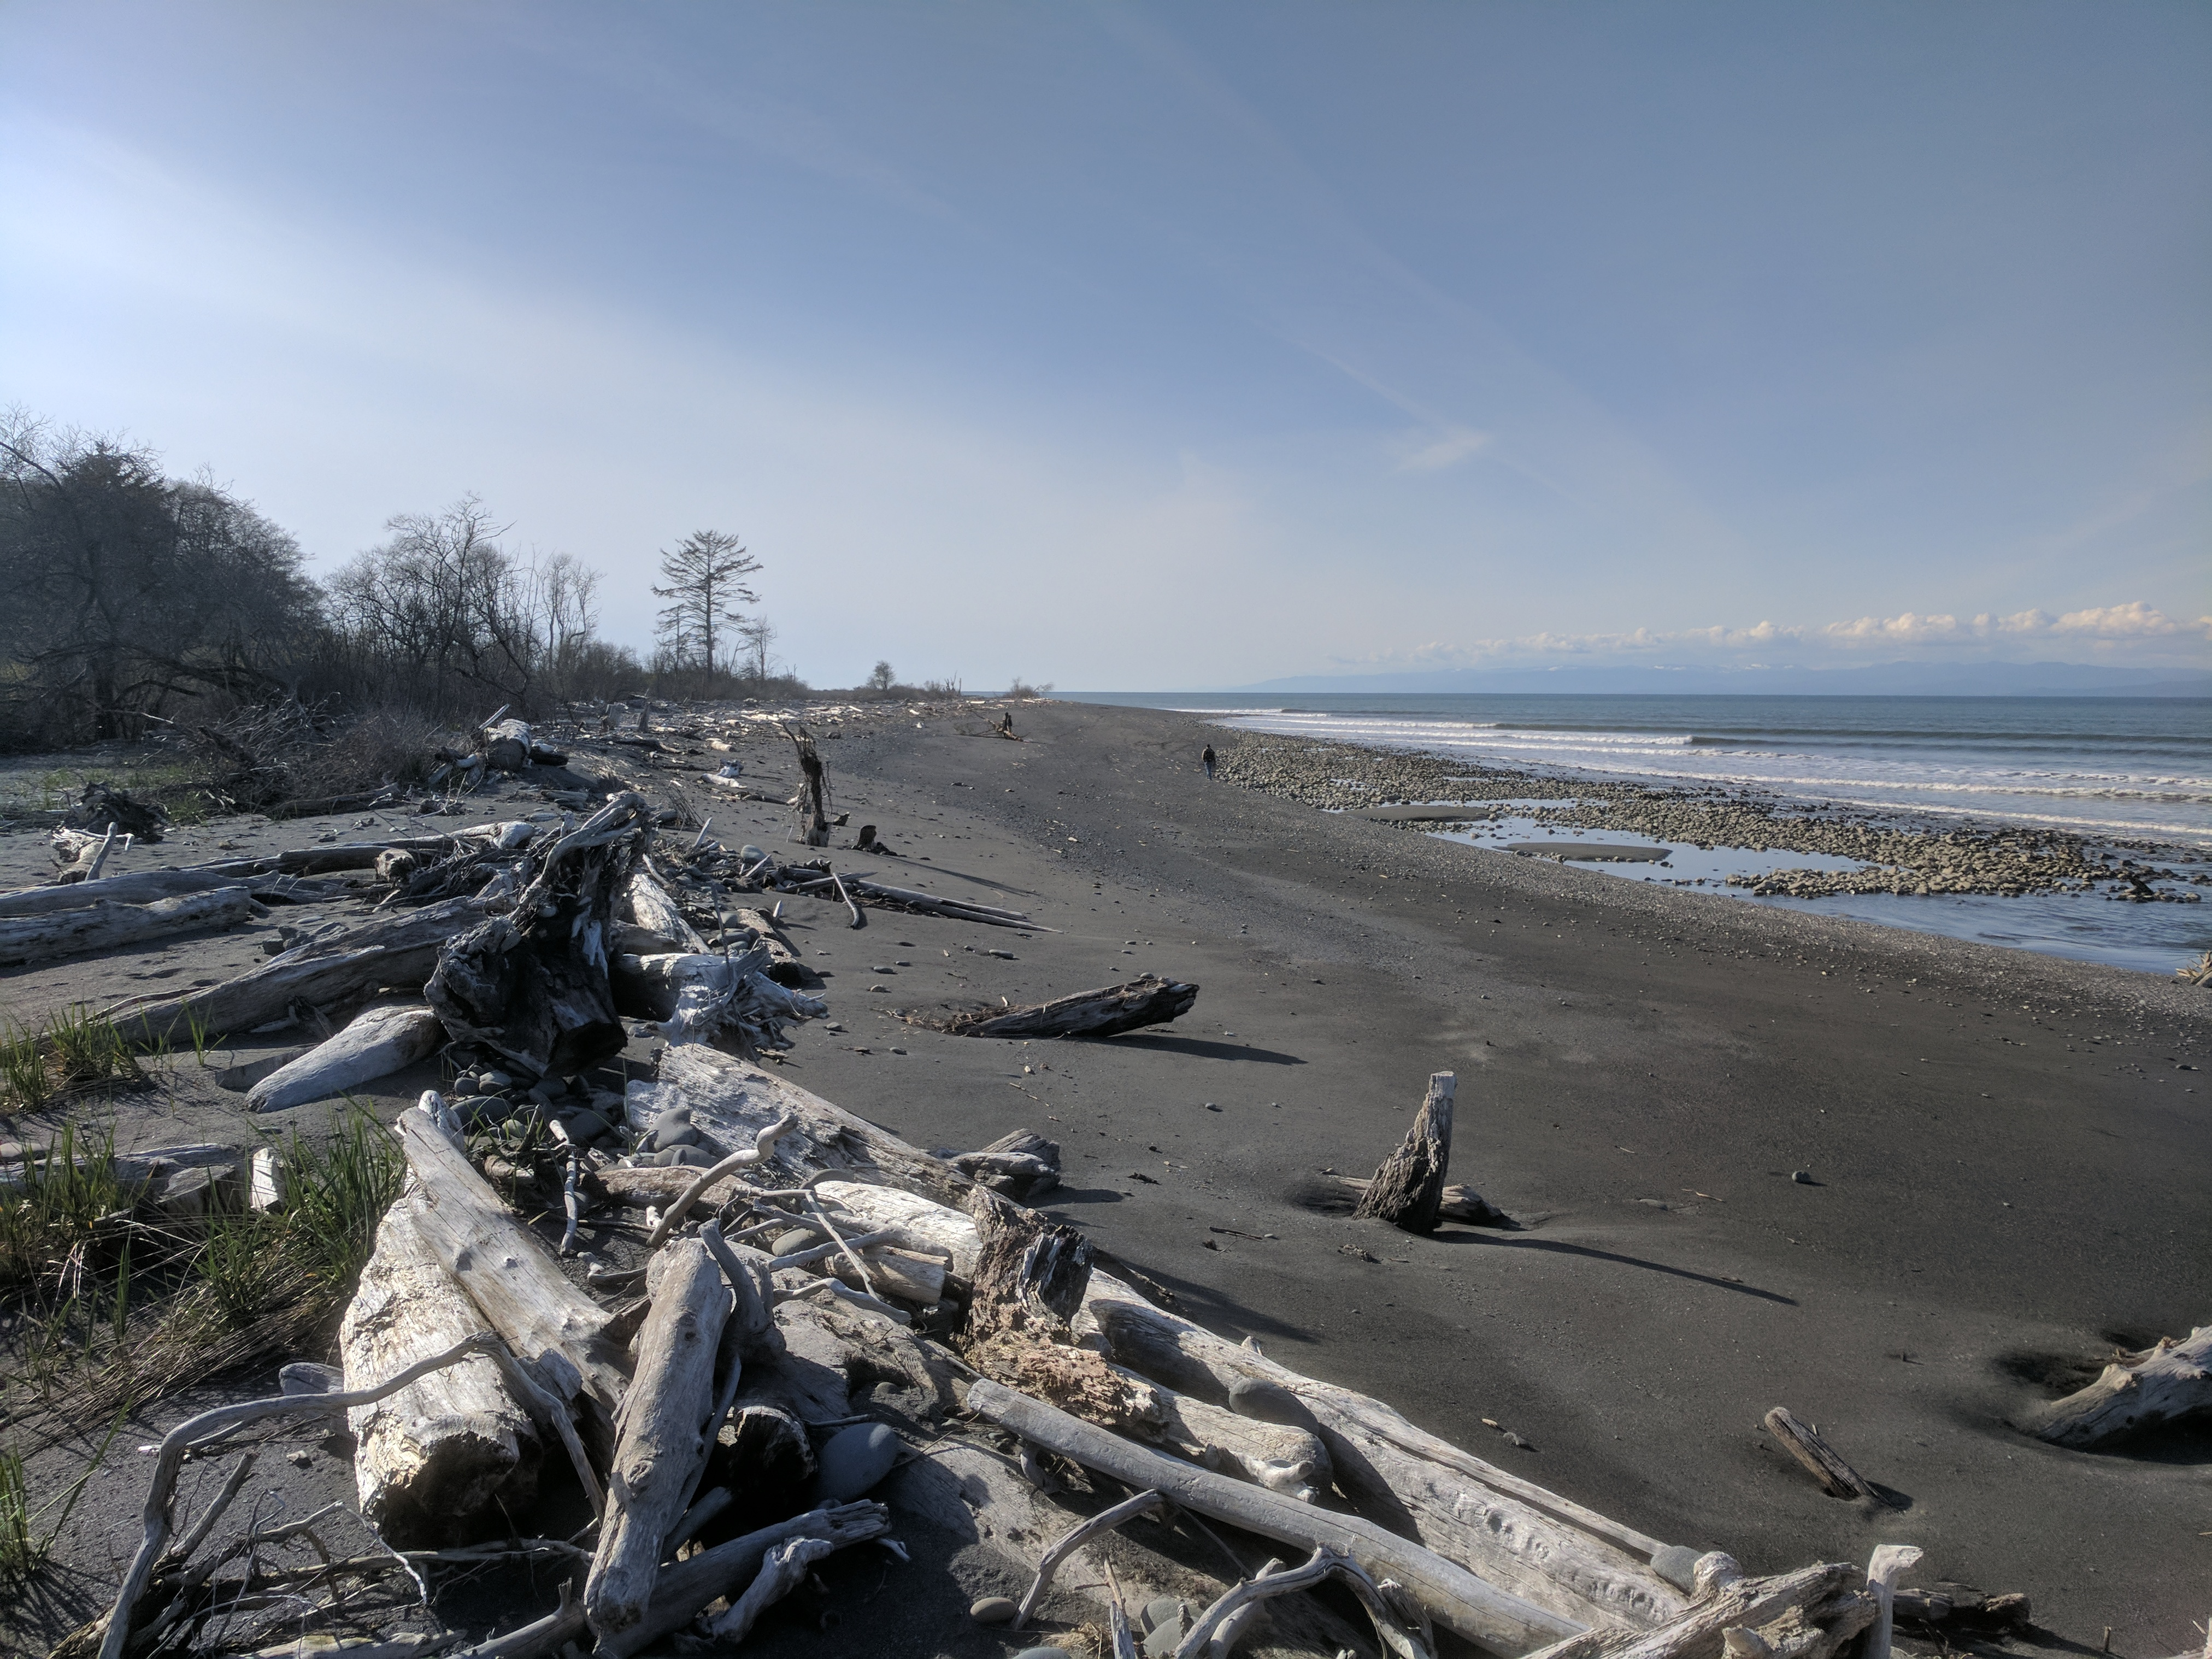 Driftwood logs on a beach of the Elwha River estuary, on the Straits of Juan de Fuca, Clallam County, Washington.